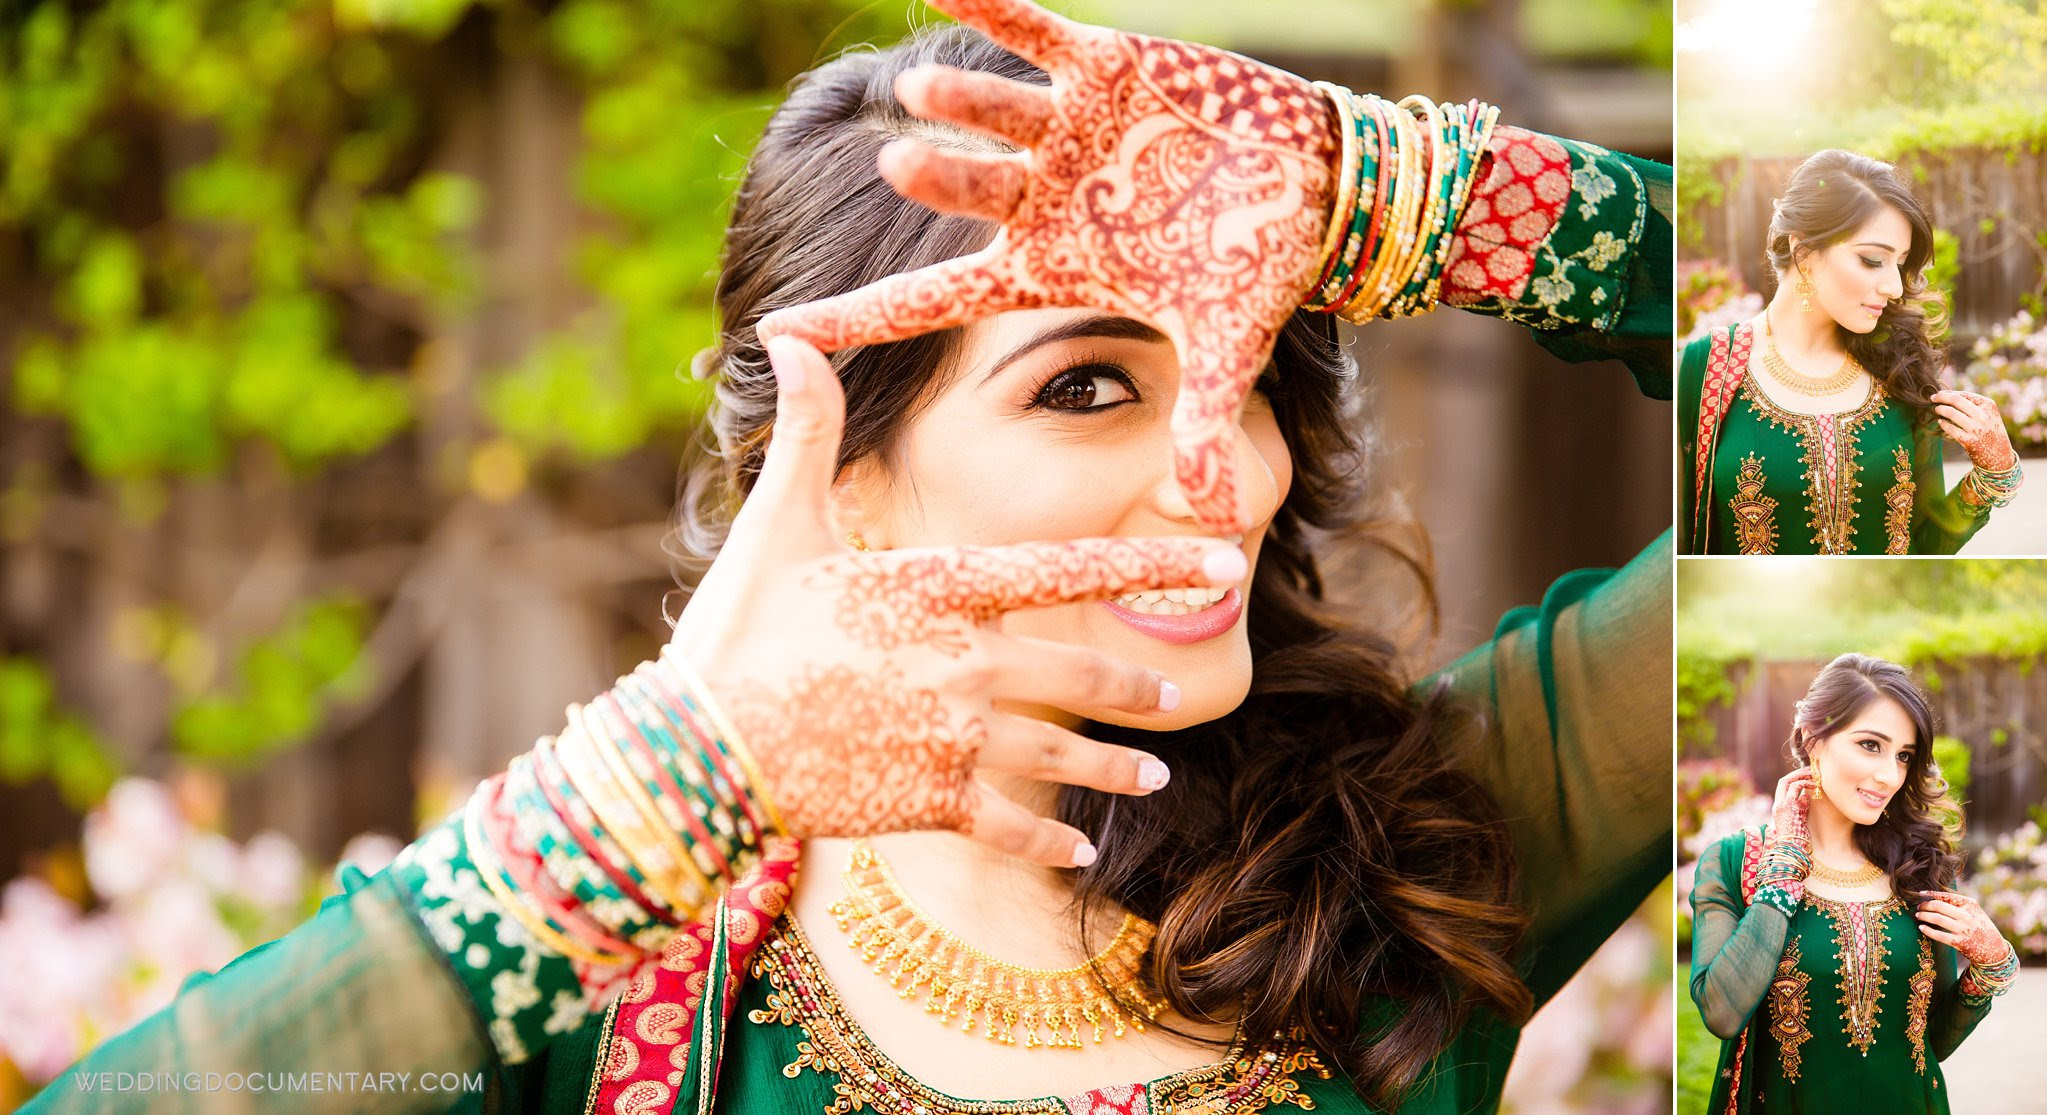 Pakistani Wedding Photography Poses Wedding Photography Poses